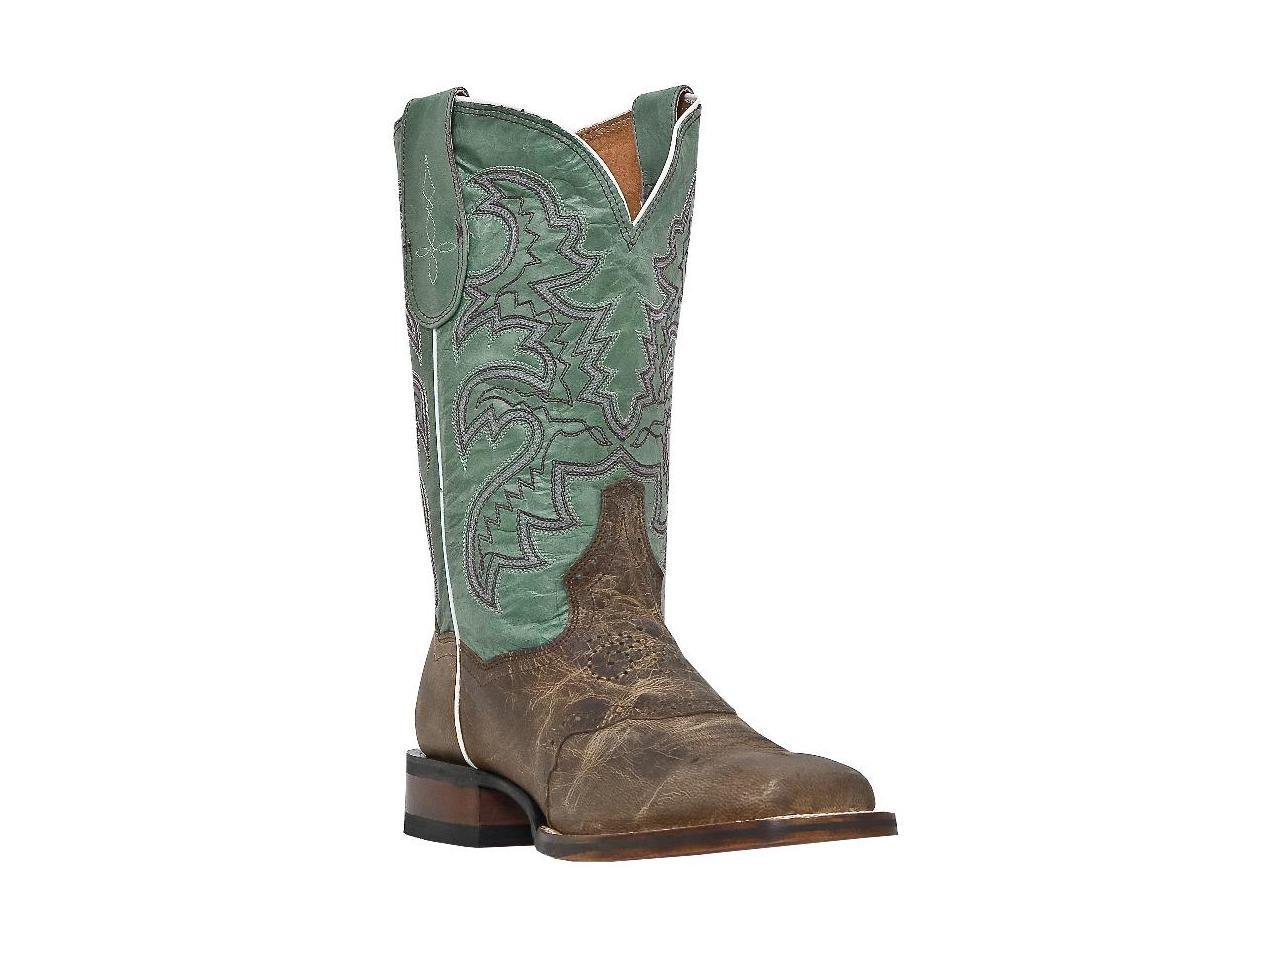 Classy Mid Square Calf Western Boots Genuine Goat Leather Square Mid Toe Lined Leather c23c02